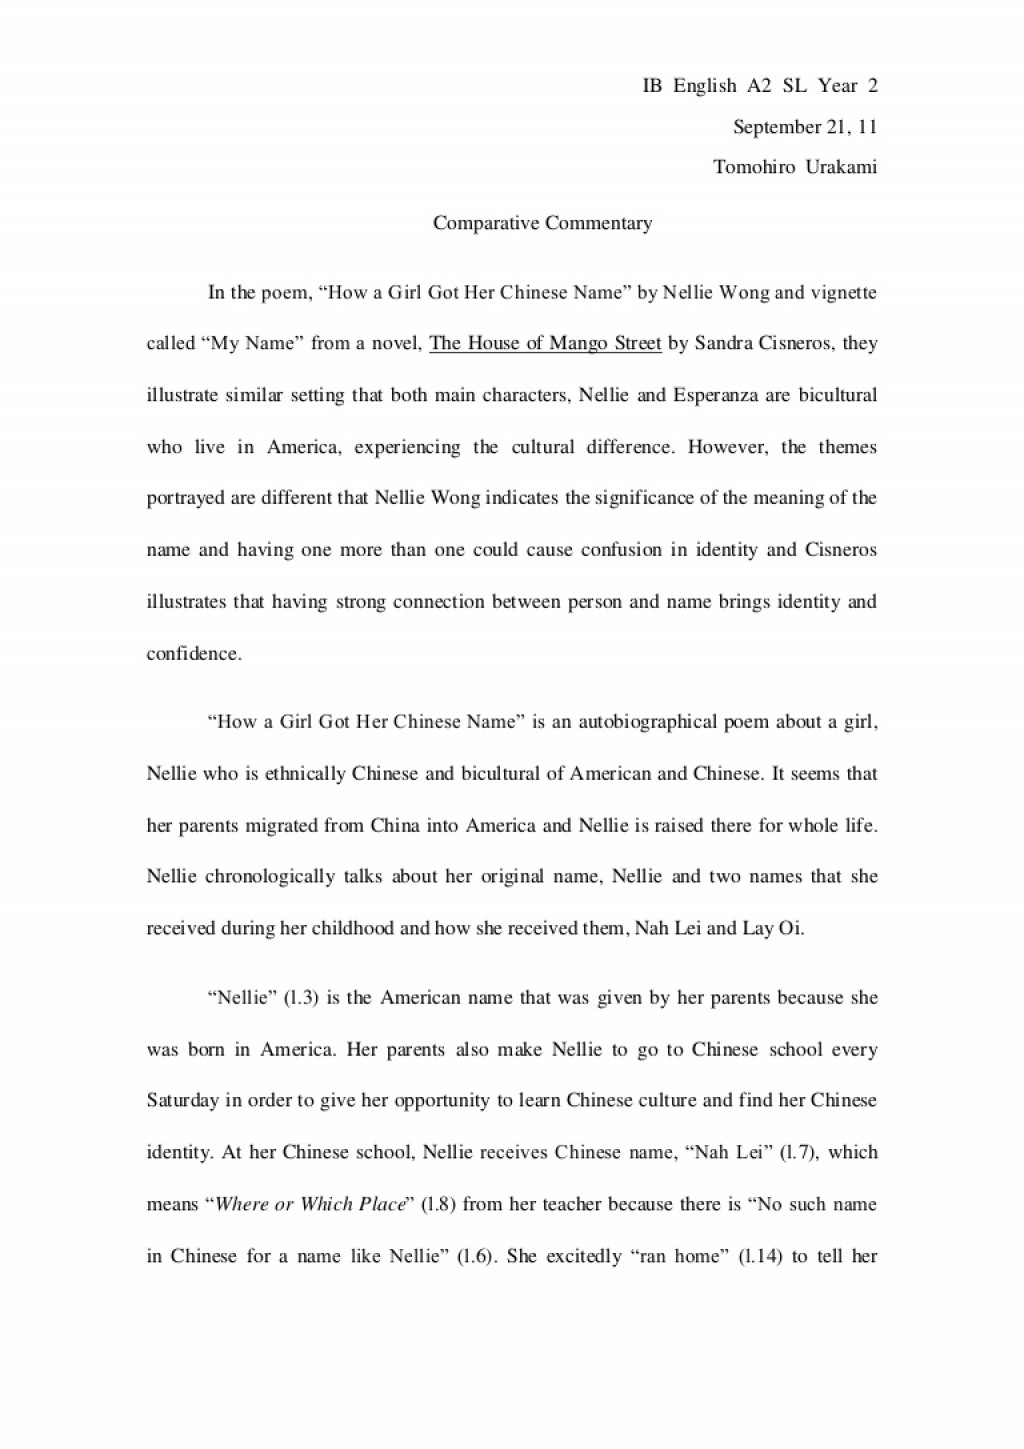 008 Compare And Contrast Essays Comparativeessaydraft Phpapp02 Thumbnail Magnificent Essay Examples Free For Elementary Students College Level Large